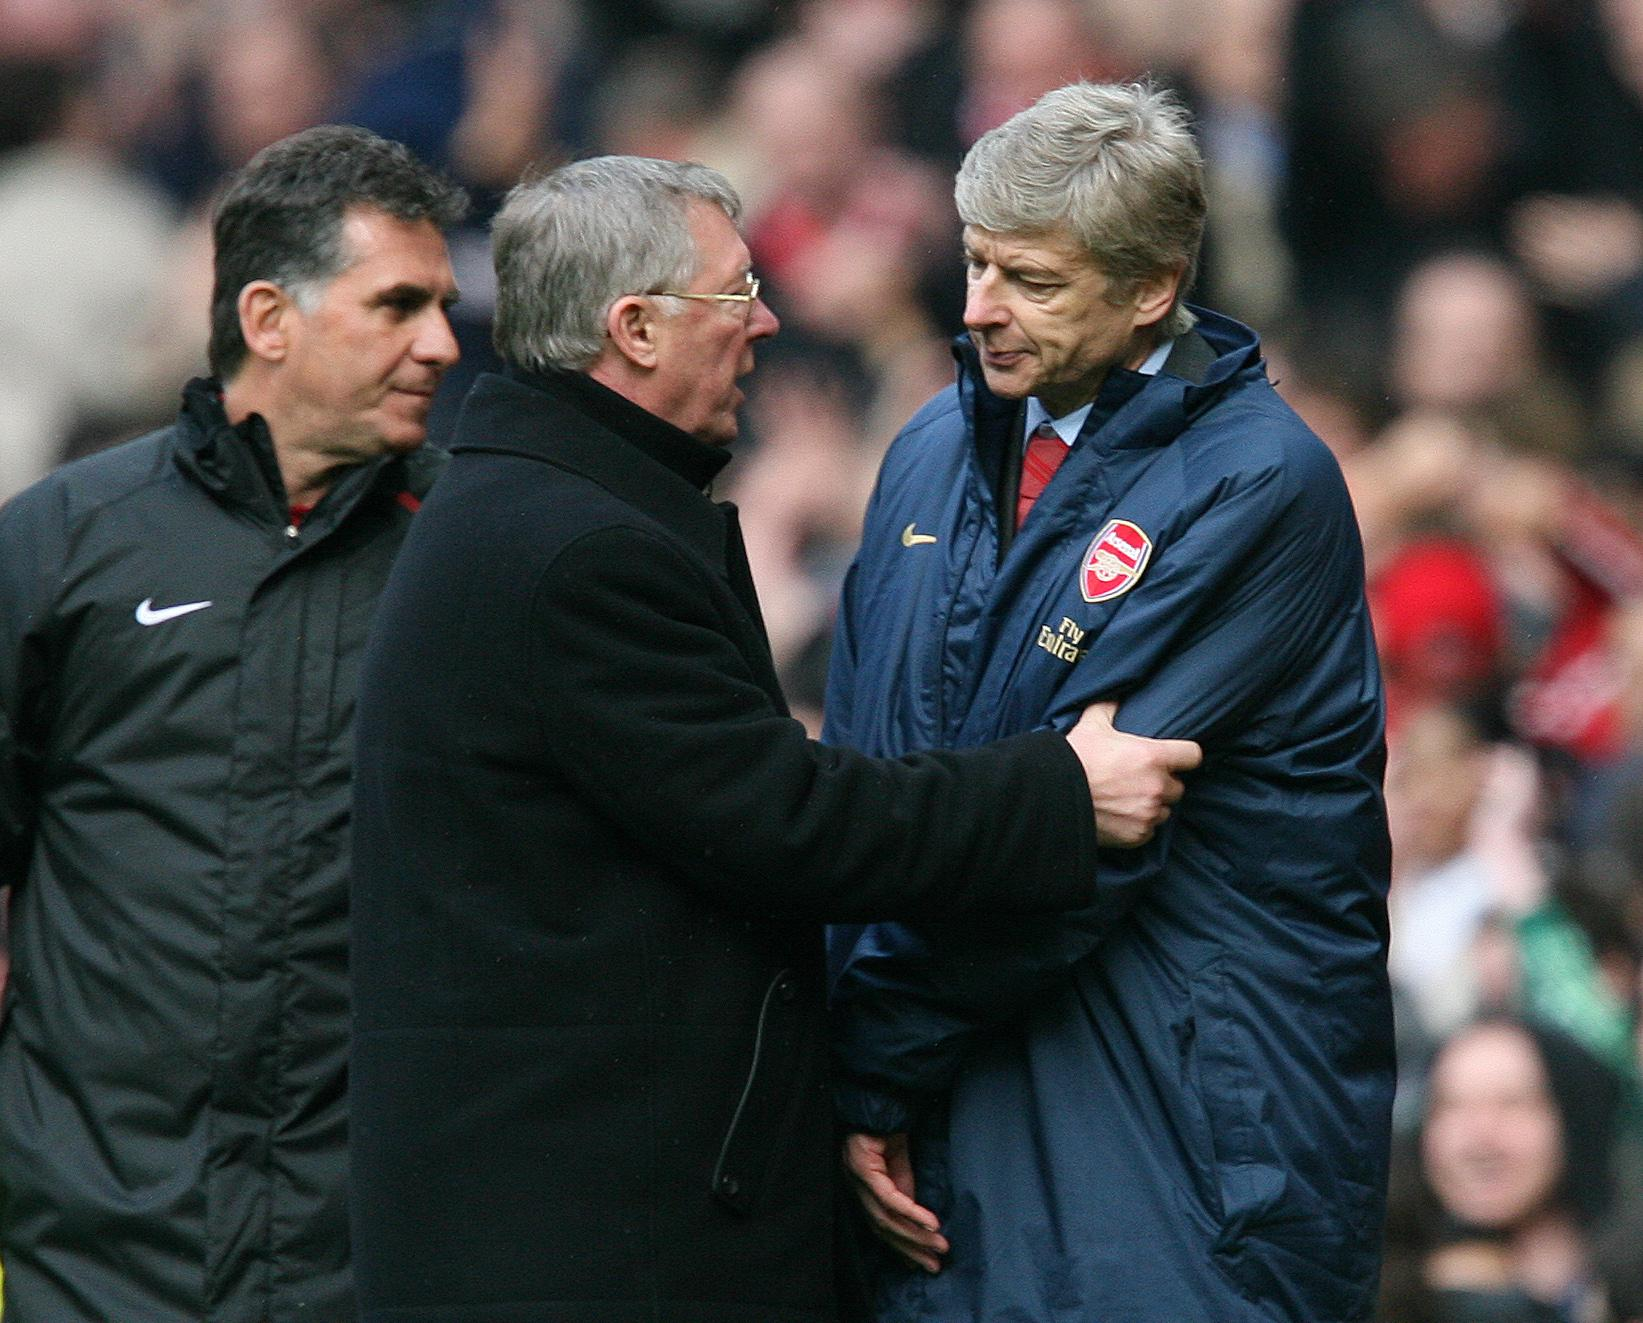 Sir Alex Ferguson used to get inside Wenger's head